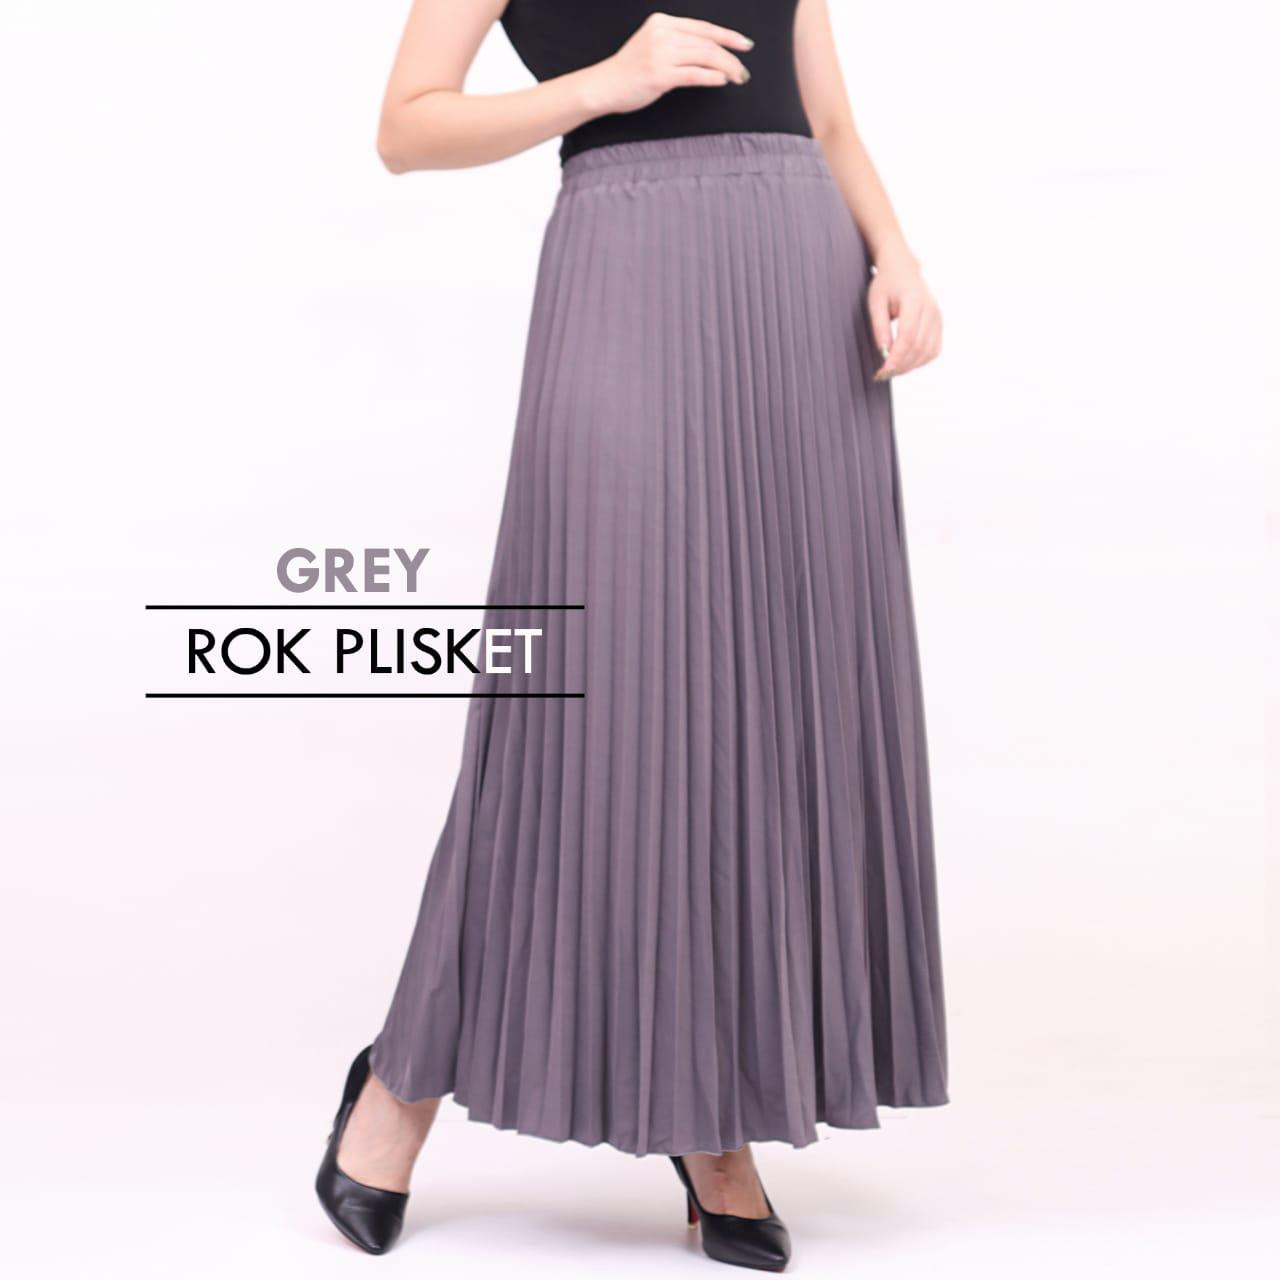 Ciara Fashion Rok Payung Plisket / Maxi Skirt / Bahan Import / Bawahan / Rok Maxi Kode.256 By Ciara Fashion.